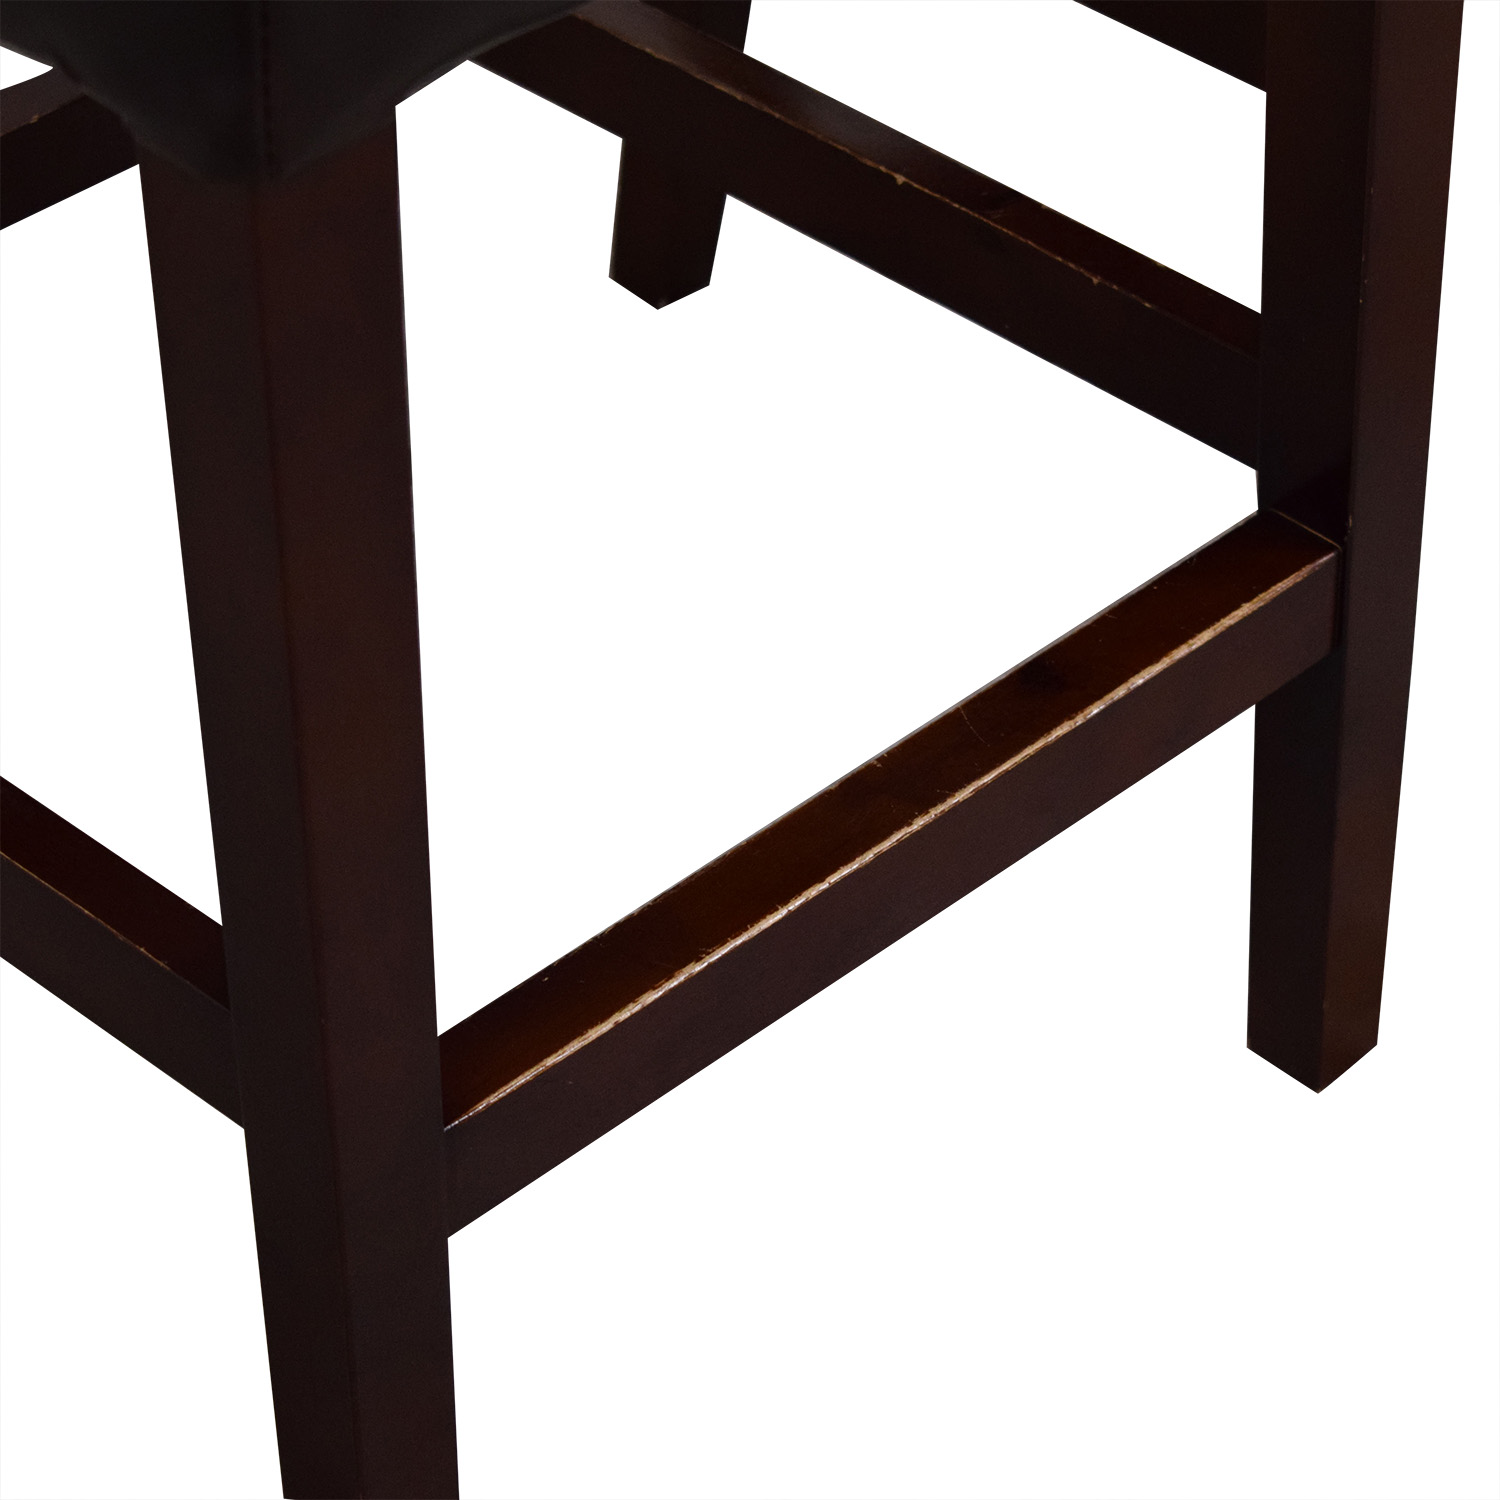 Four Hands Four Hands Ashford James Counter Stools Chairs